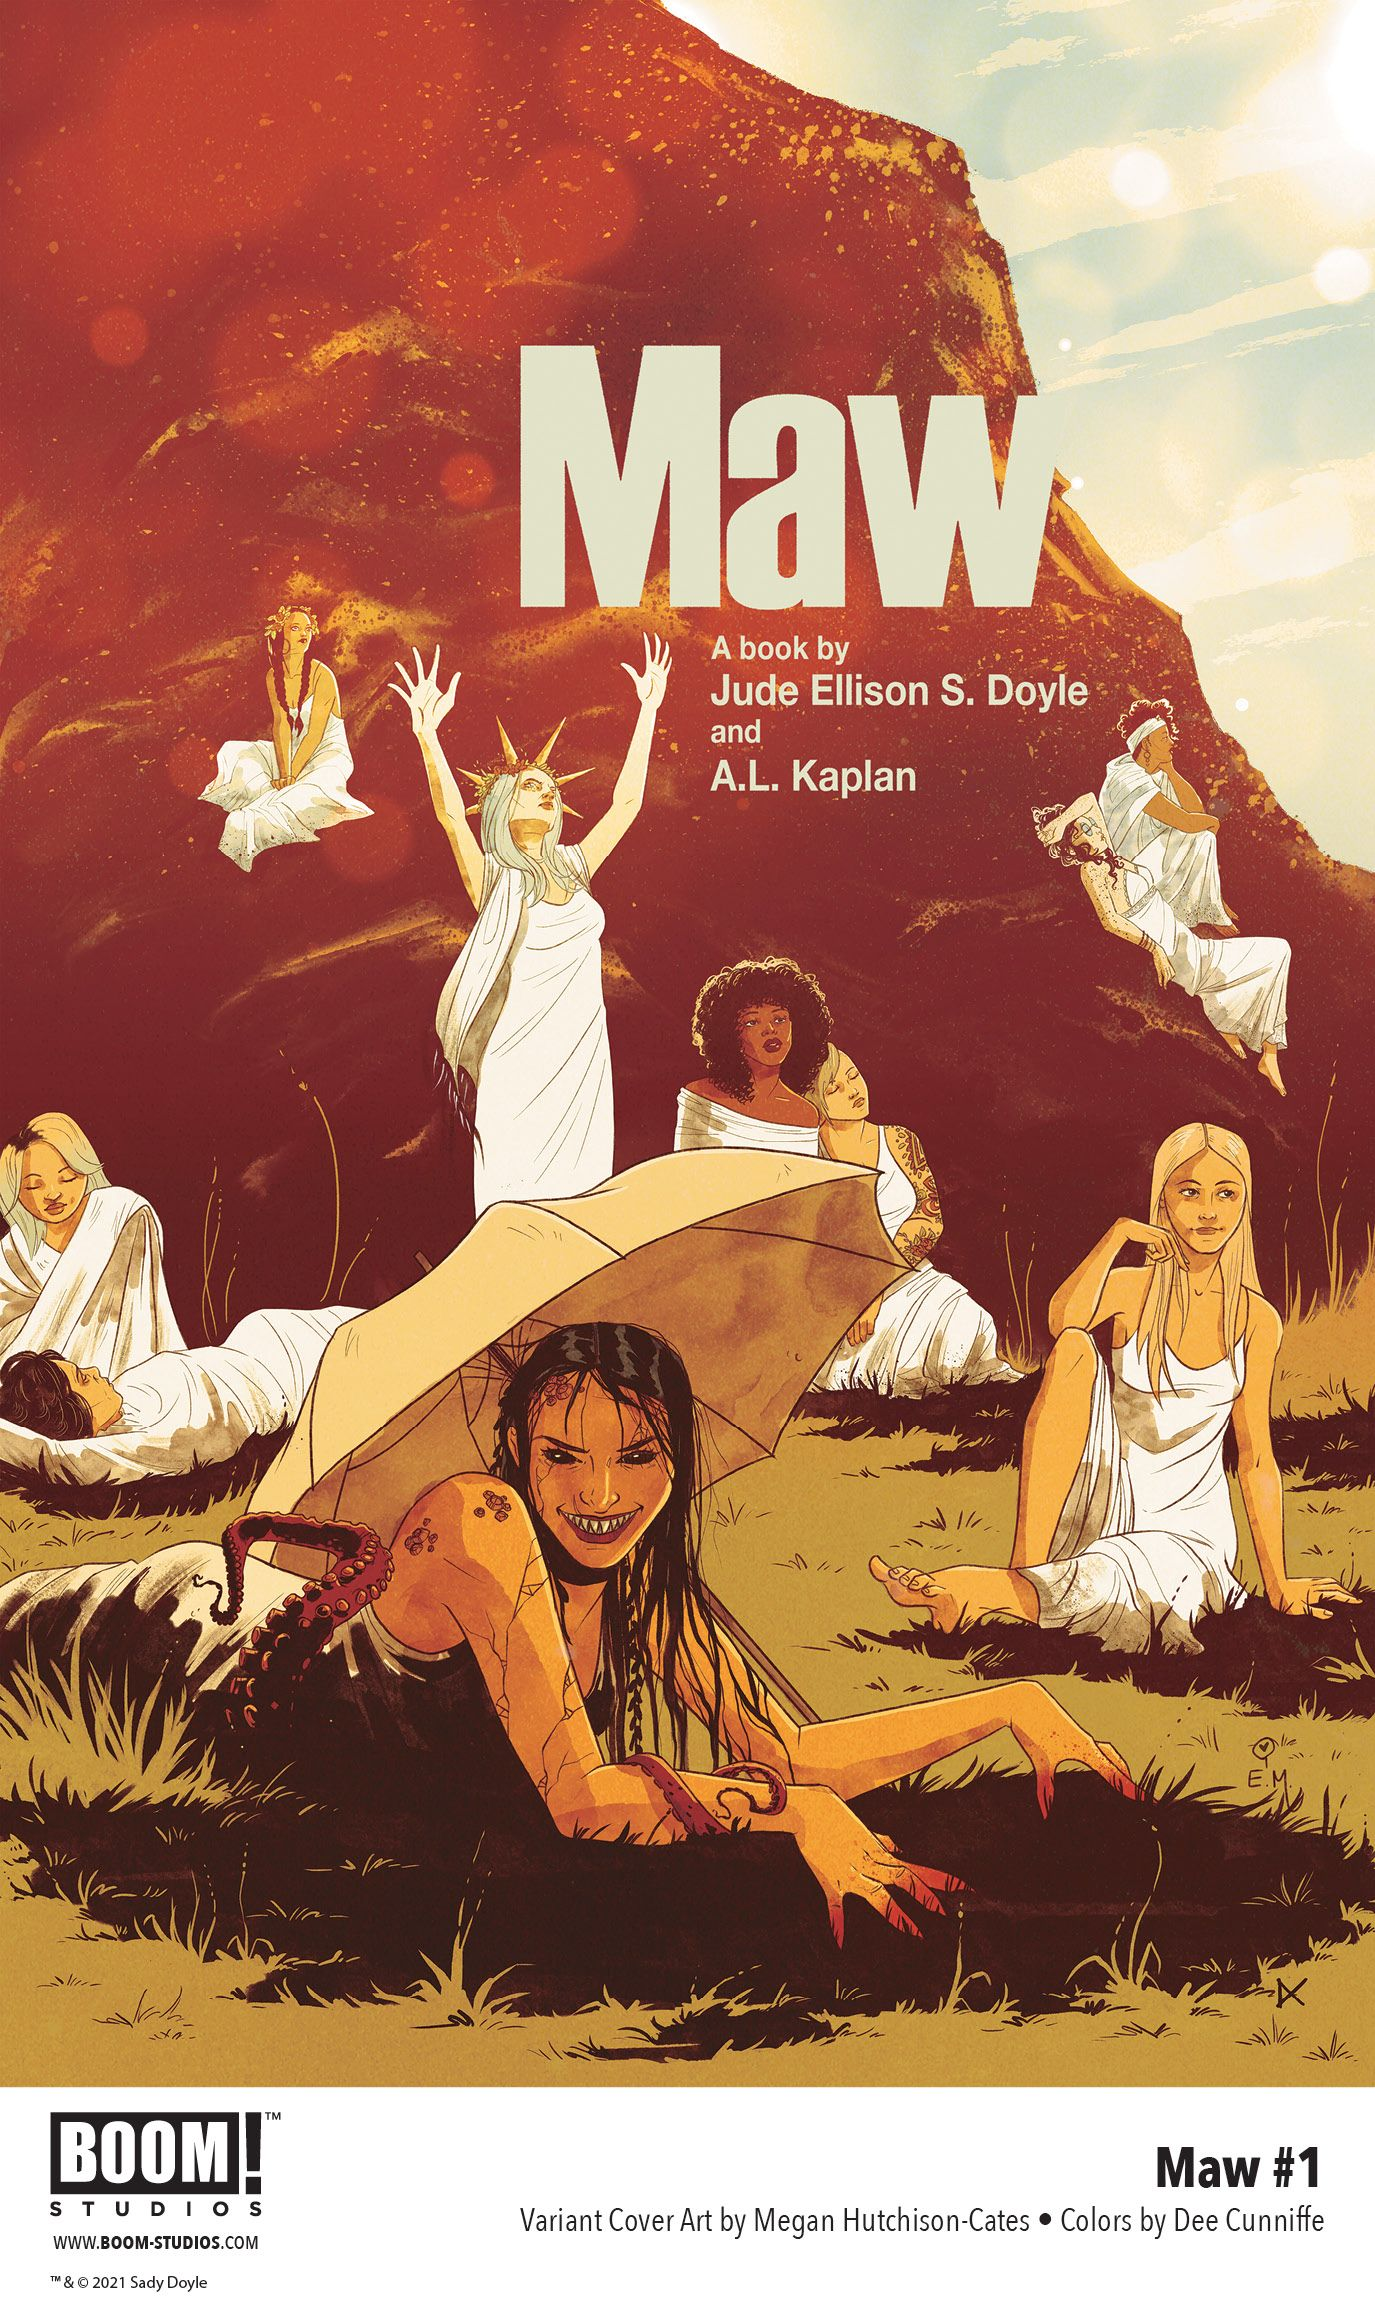 Your First Look at Jude Ellison S. Doyle and A.L. Kaplan's MAW #1